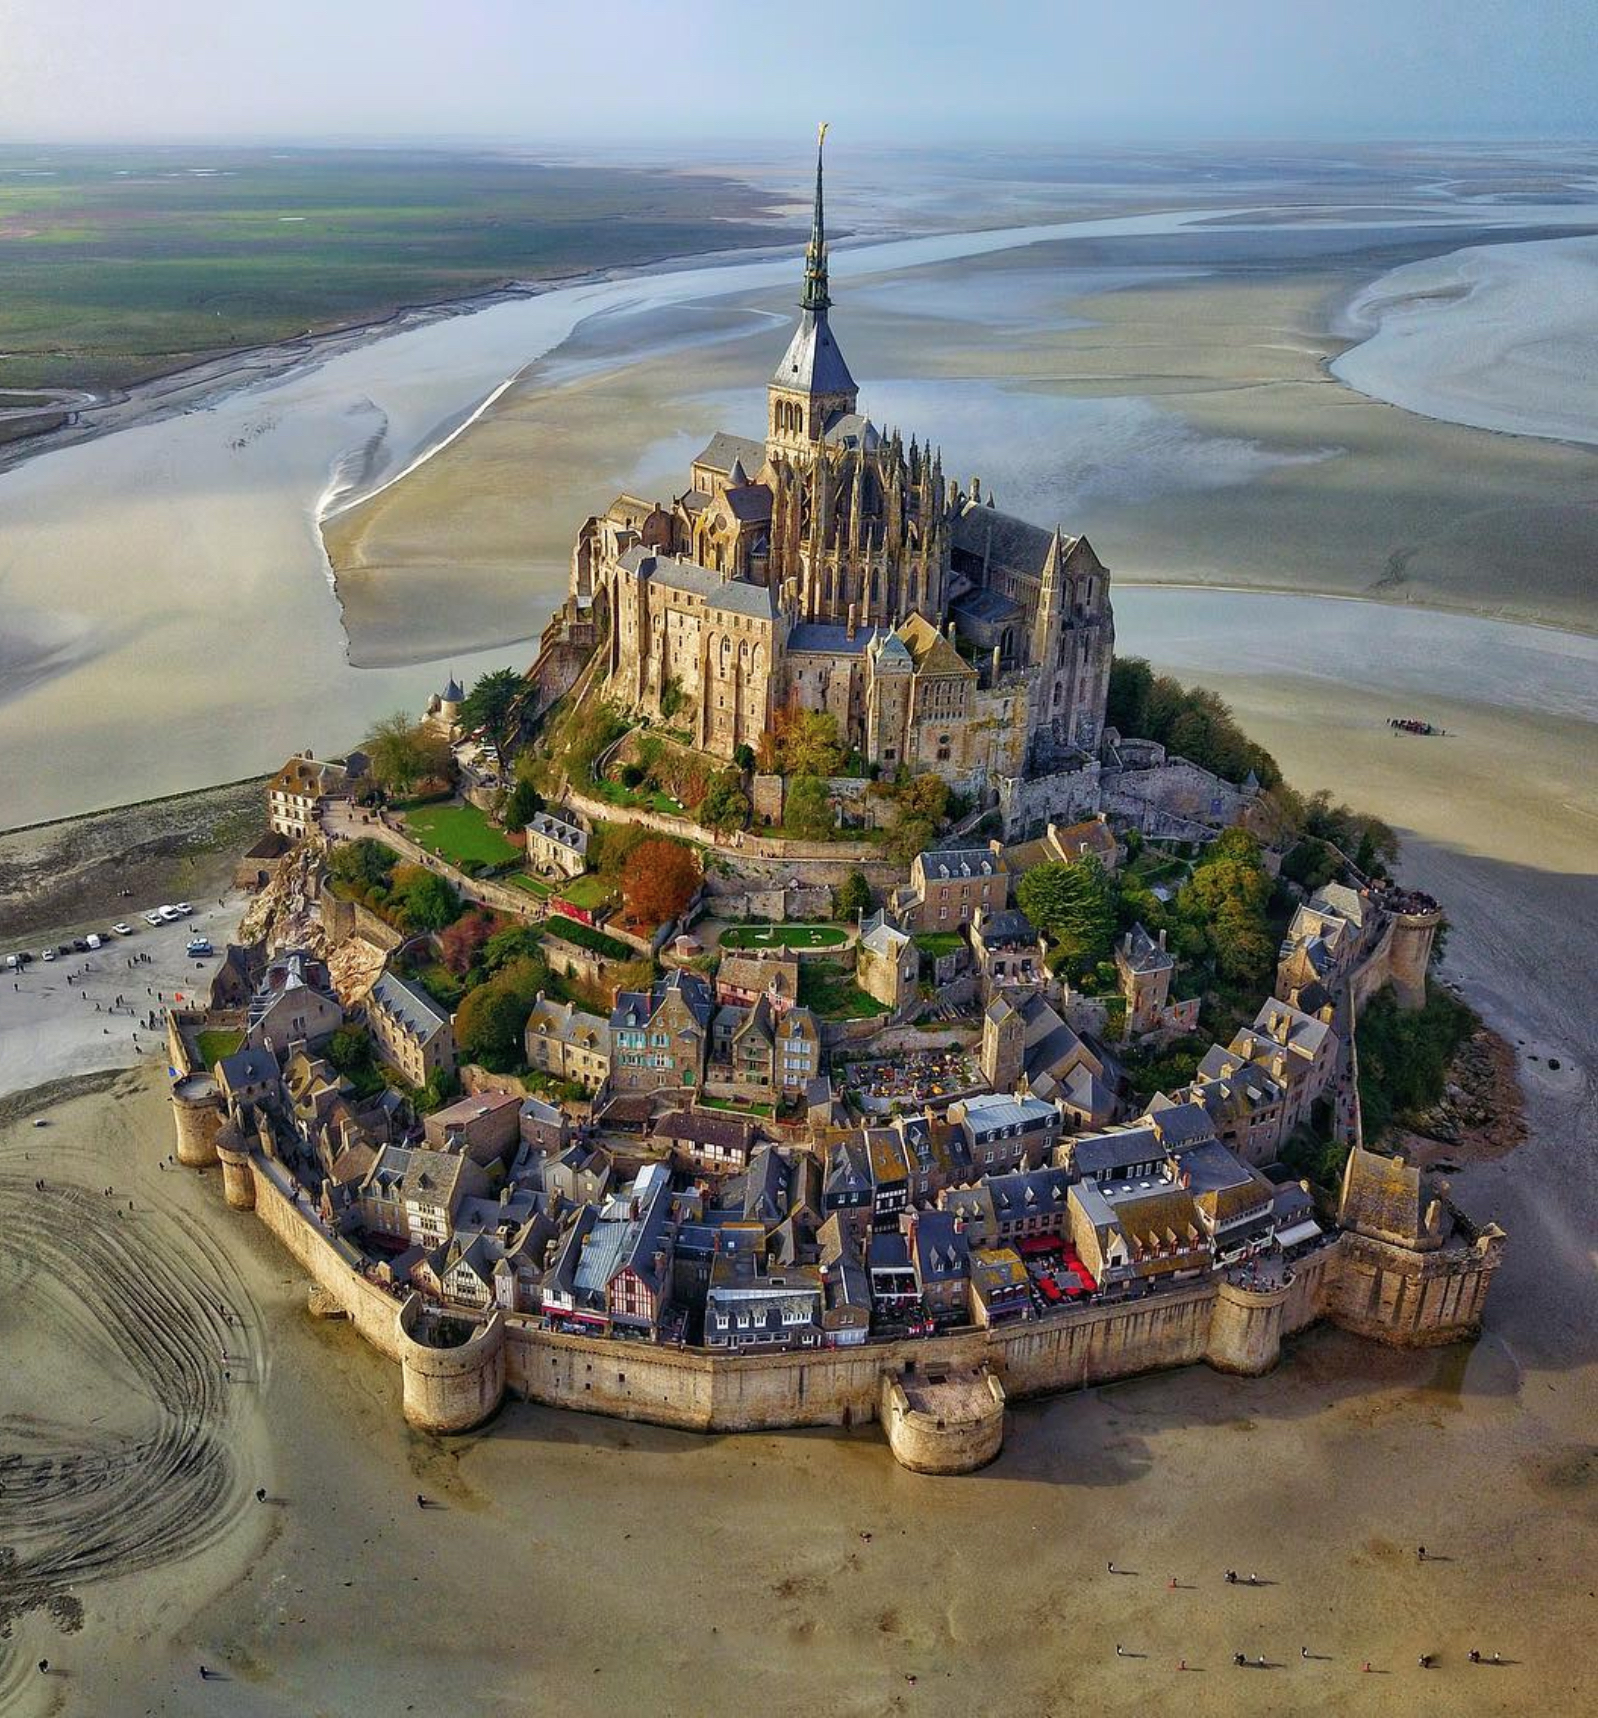 """This week's """"Drone Sunday"""" post from From Where I Drone gives us an incredible view of Mont St. Michel in Normandy, France. Over the past 600 years, the island has functioned as a prominent monastery (accessible to pilgrims only during low tide), a French military fortification, and a prison. Follow From Where I Drone for more incredible drone photos!  48°38'09.6""""N, 1°30'41.0""""W  Source imagery: @secretagent_wesanderson"""